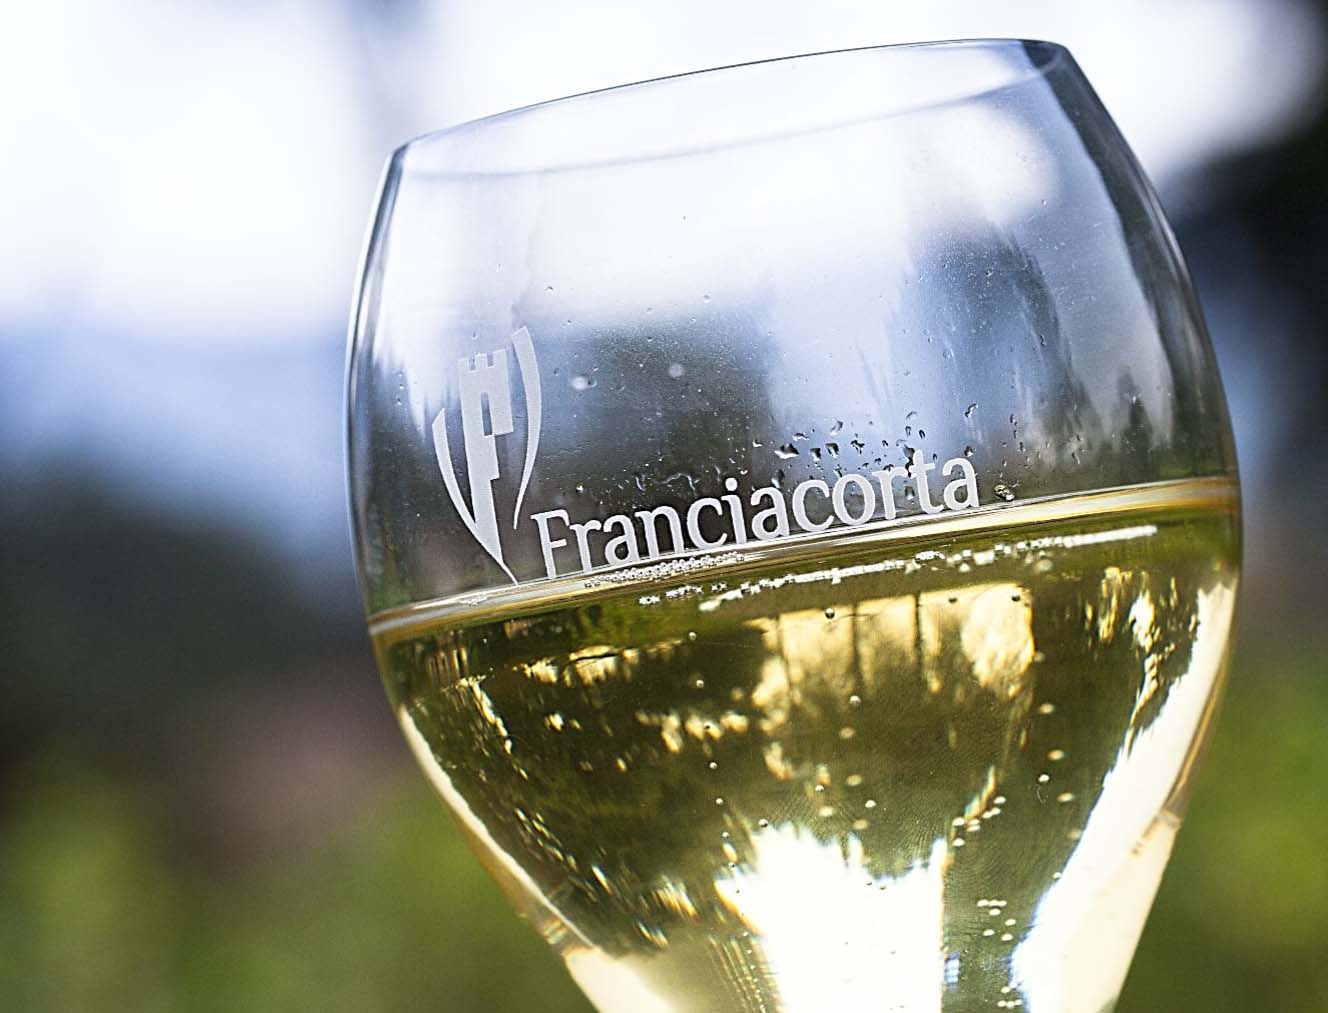 a-weekend-of-pure-golf-discovering-franciacorta-wines-expericence-italy4golf